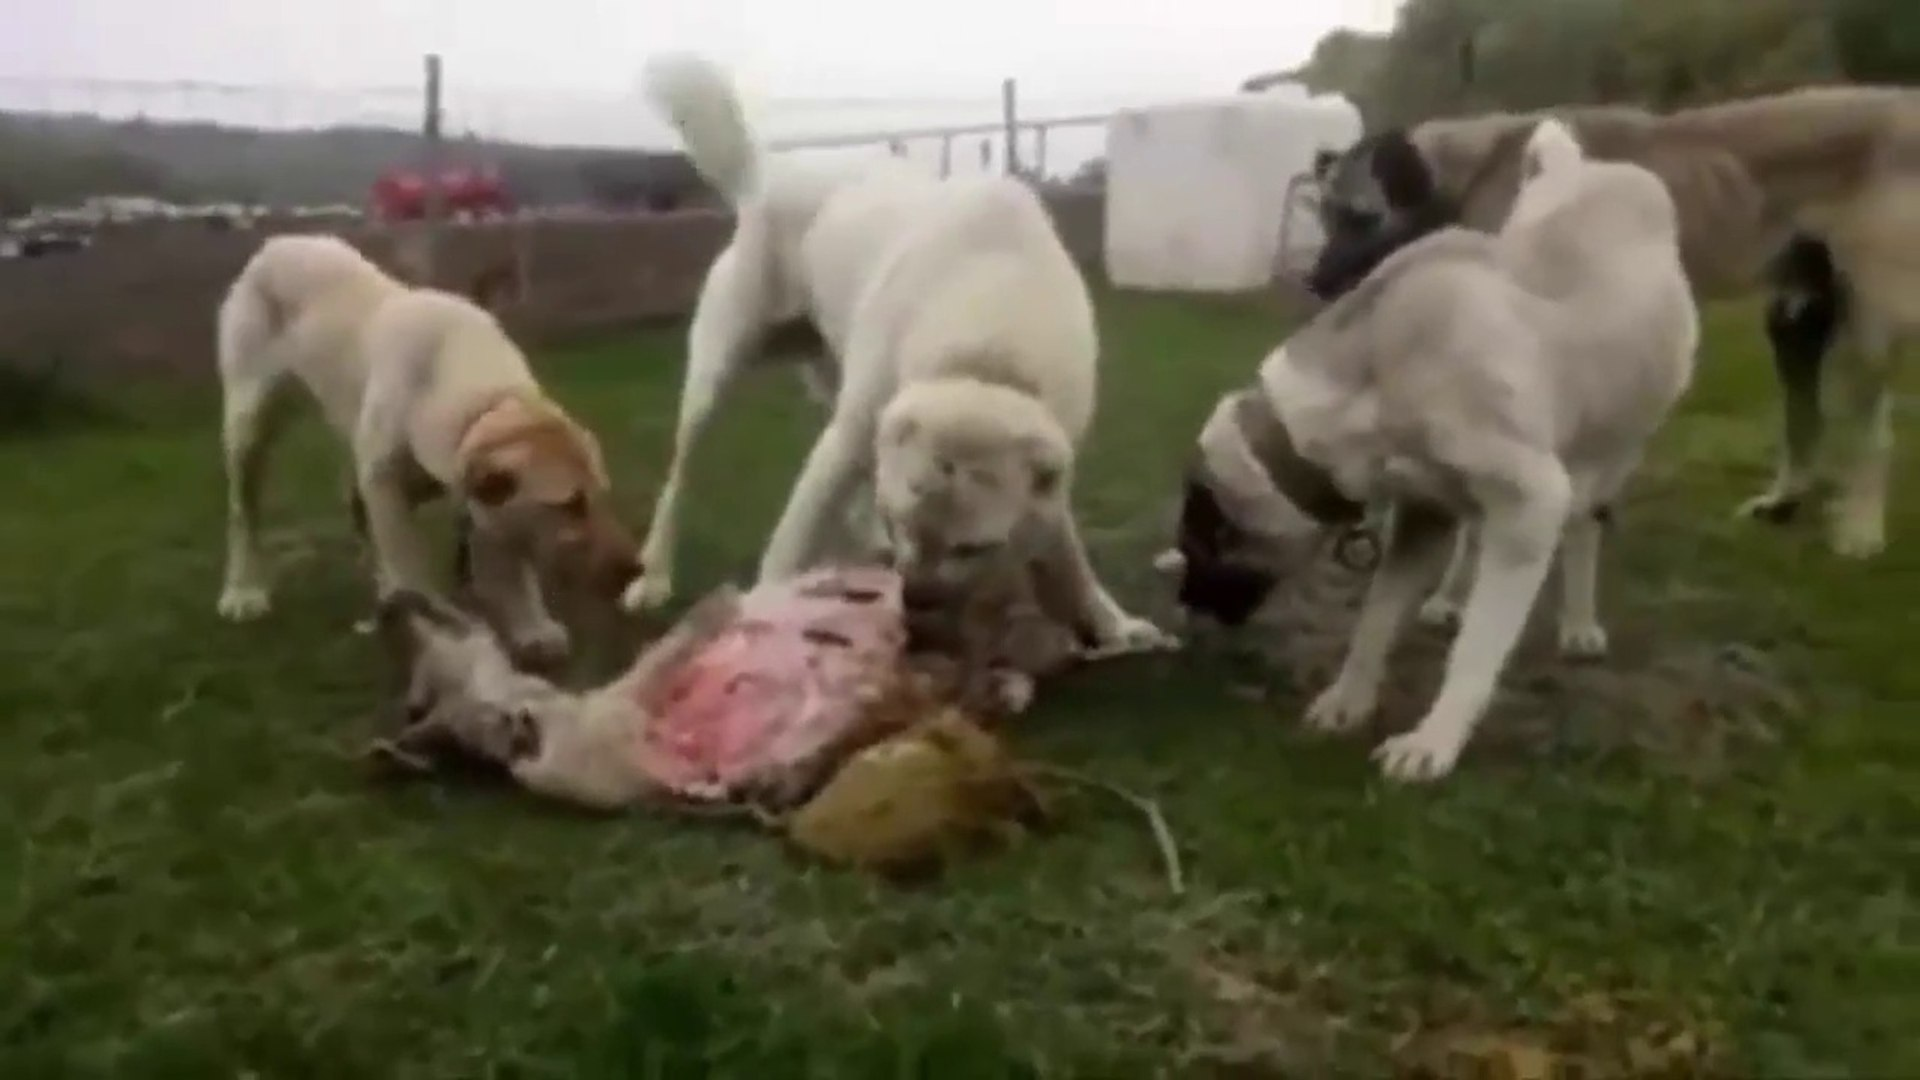 COBAN KOPEKLERi ve KANGALLAR OGLE YEMEGiNDE - SHEPHERD DOGS and KANGAL DOG LUNCH